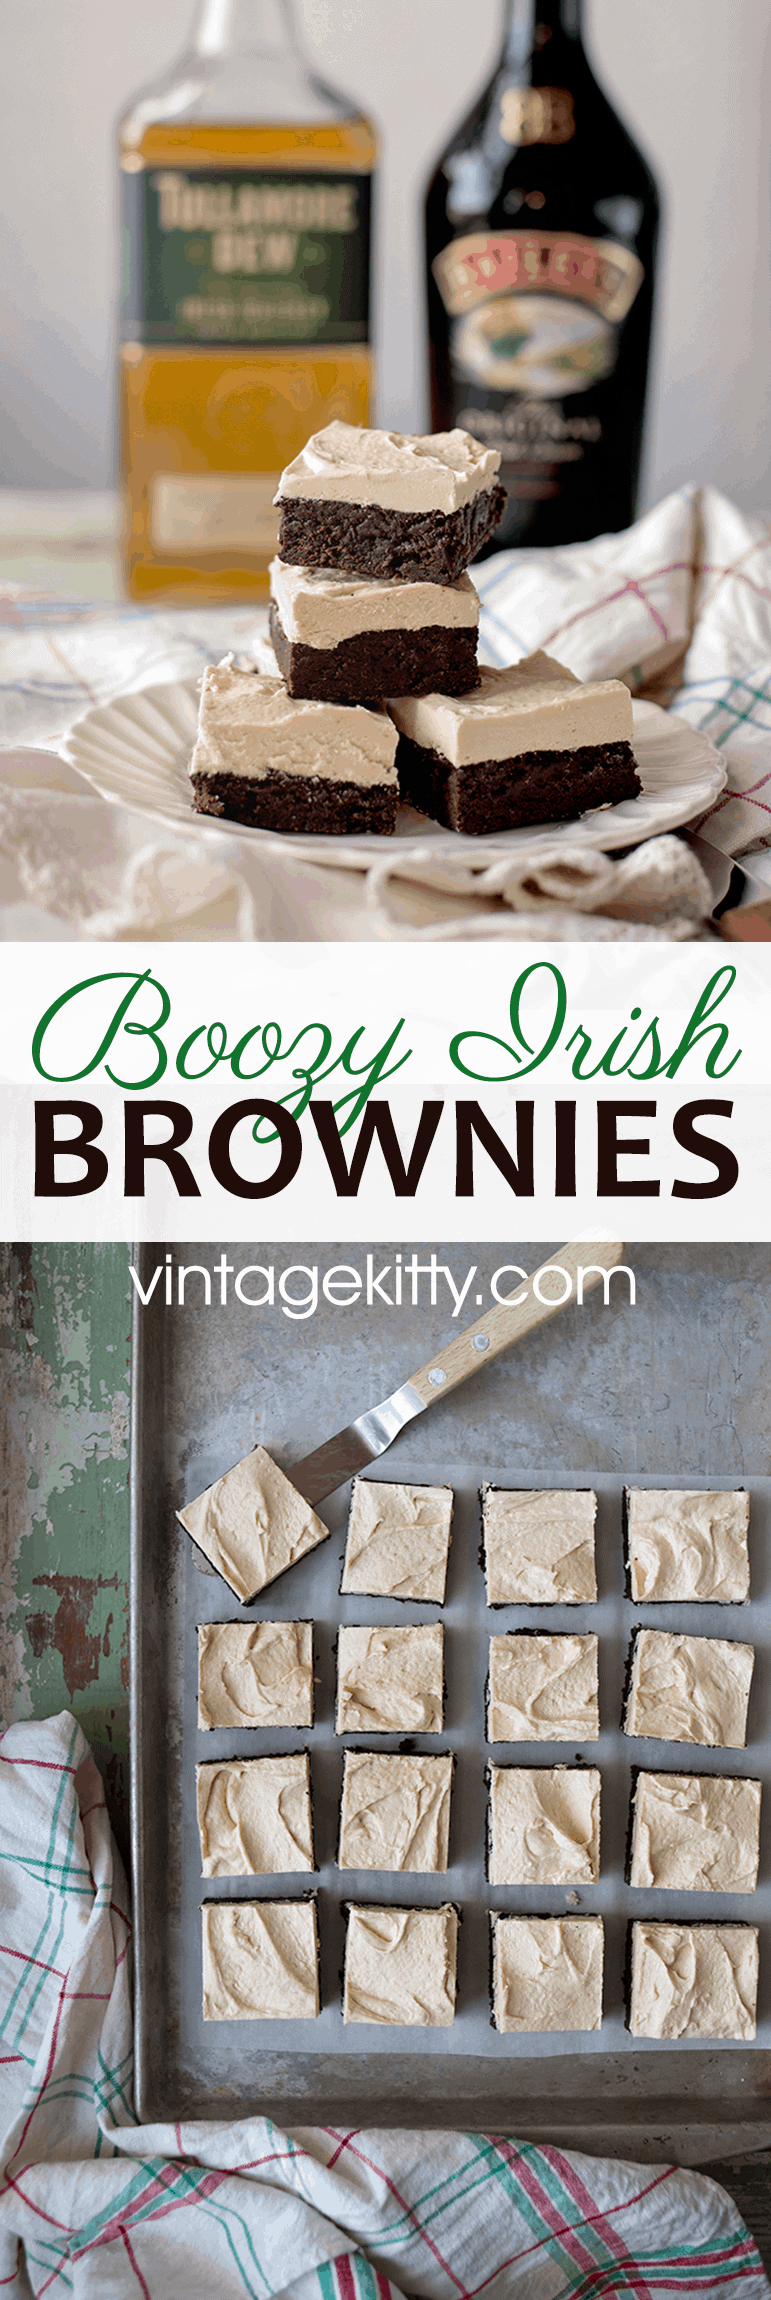 Boozy Irish Brownies have a fudgy chocolate layer that is topped with a whiskey and Irish cream white chocolate ganache. YUM! #stpaddysday #stpatricksday #irishcream #baileys #boozydesserts